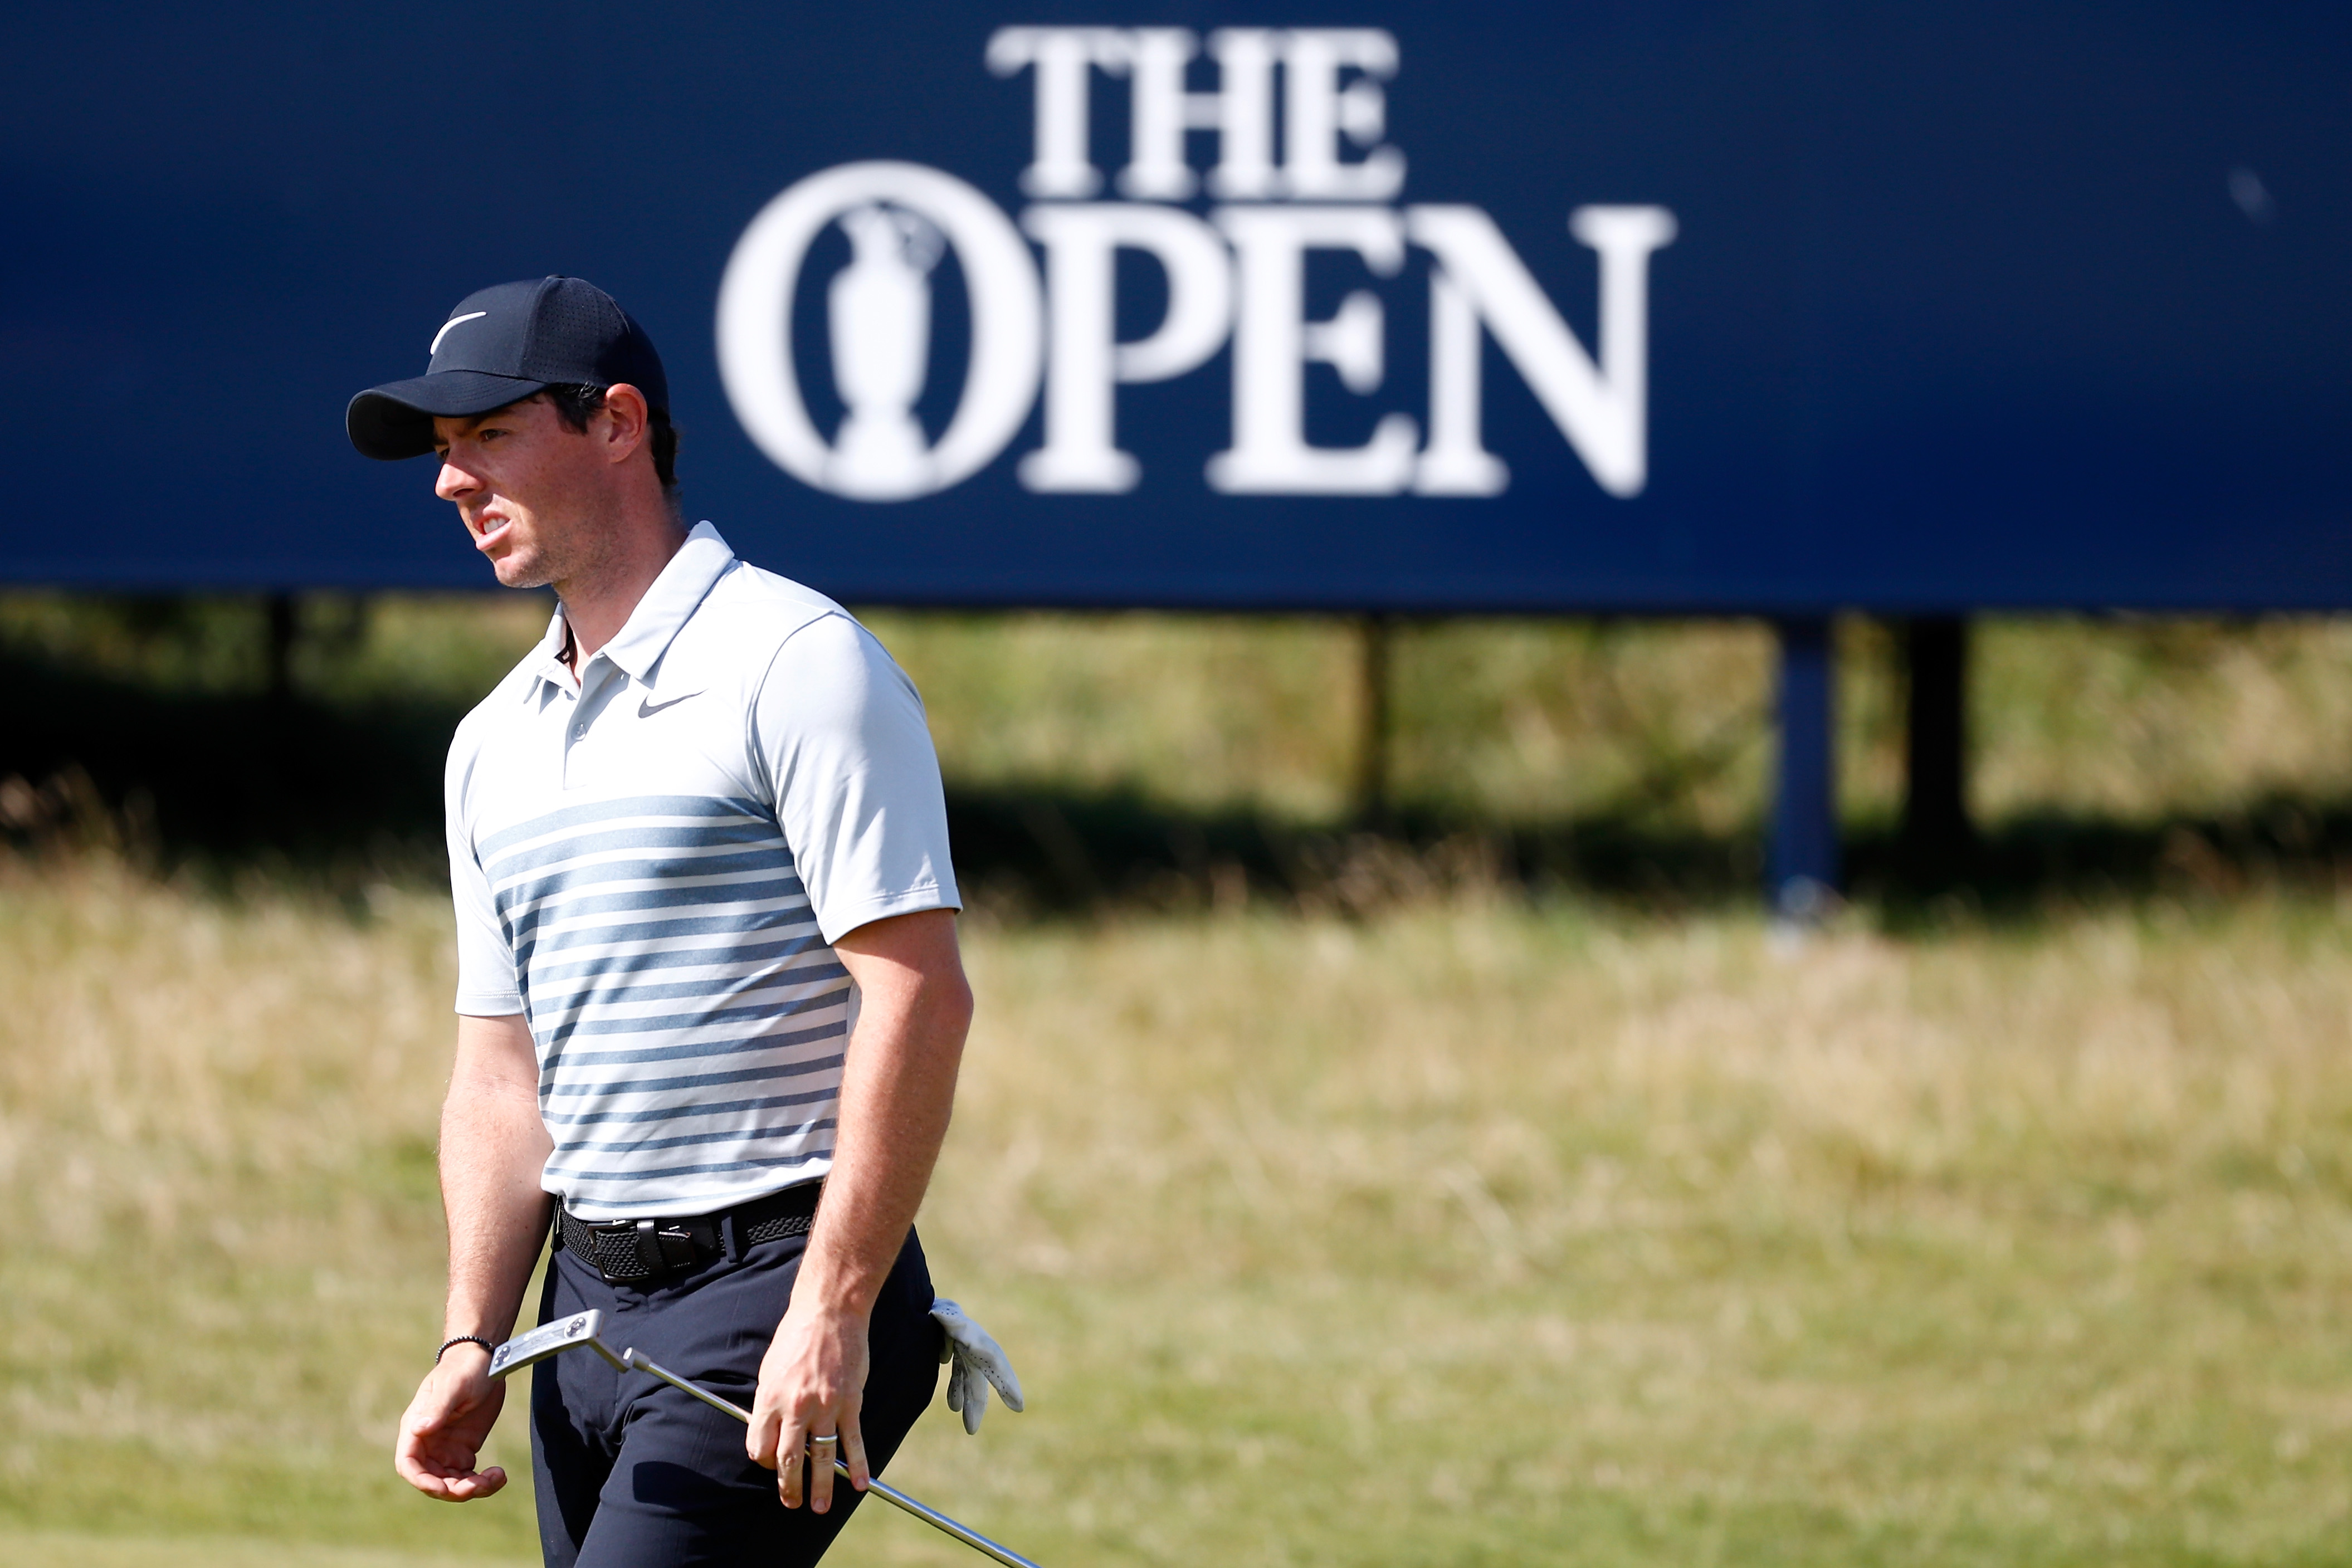 2017 05 jordan baker quotes chapter 1 - 146th Open Championship Previews